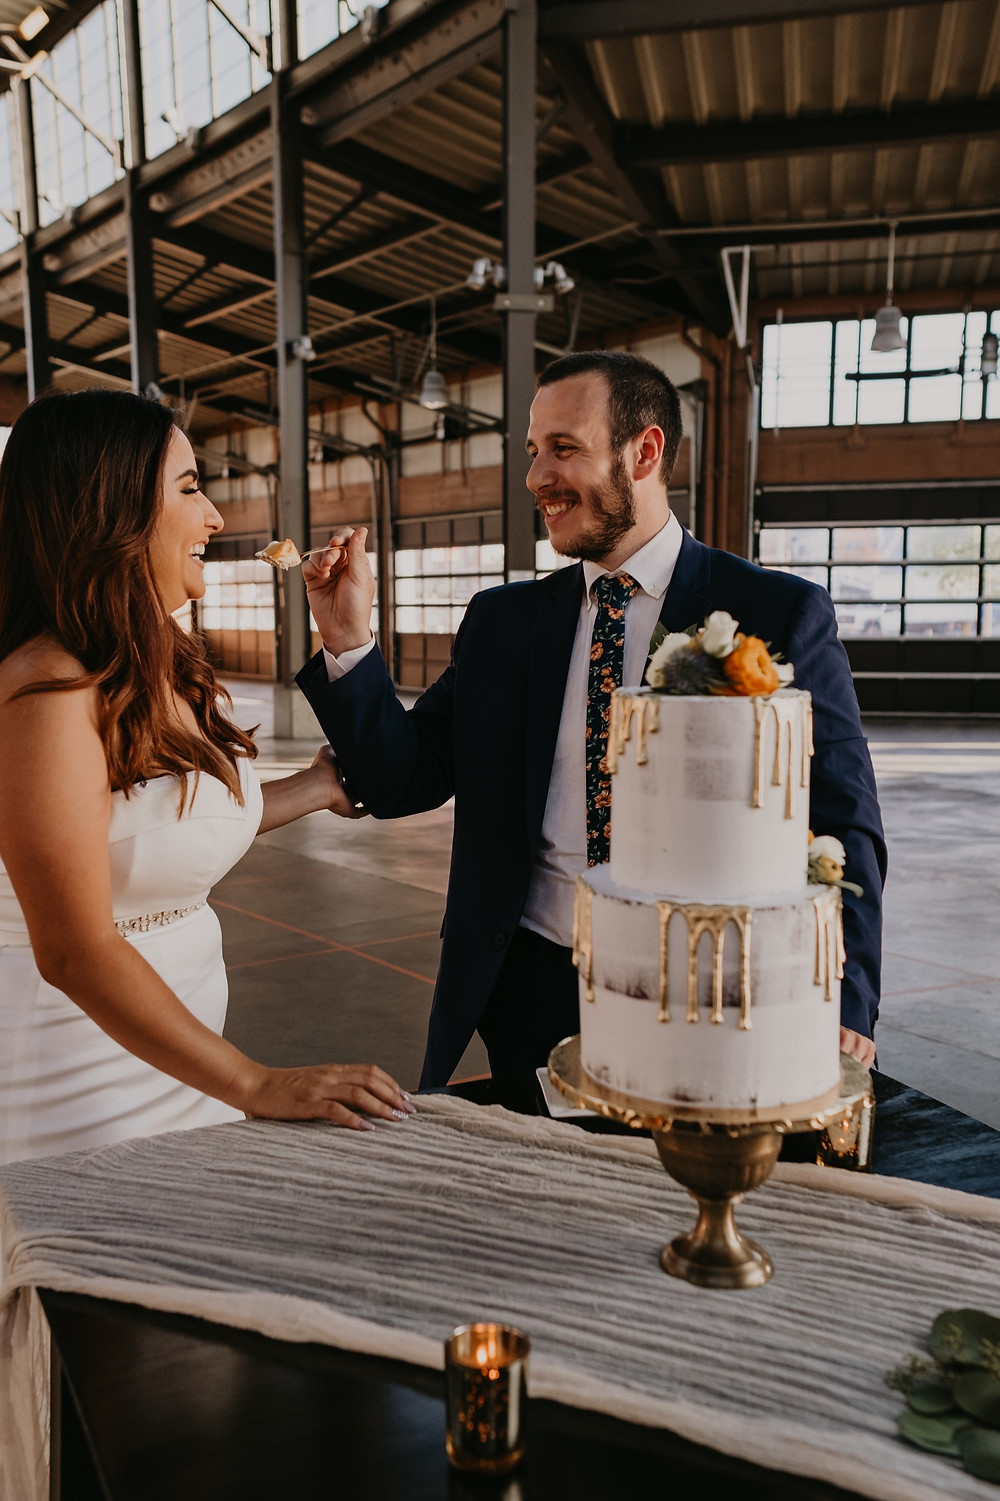 Bride and groom sharing cake at Eastern Market industrial style wedding. Photographed by Nicole Leanne Photography.